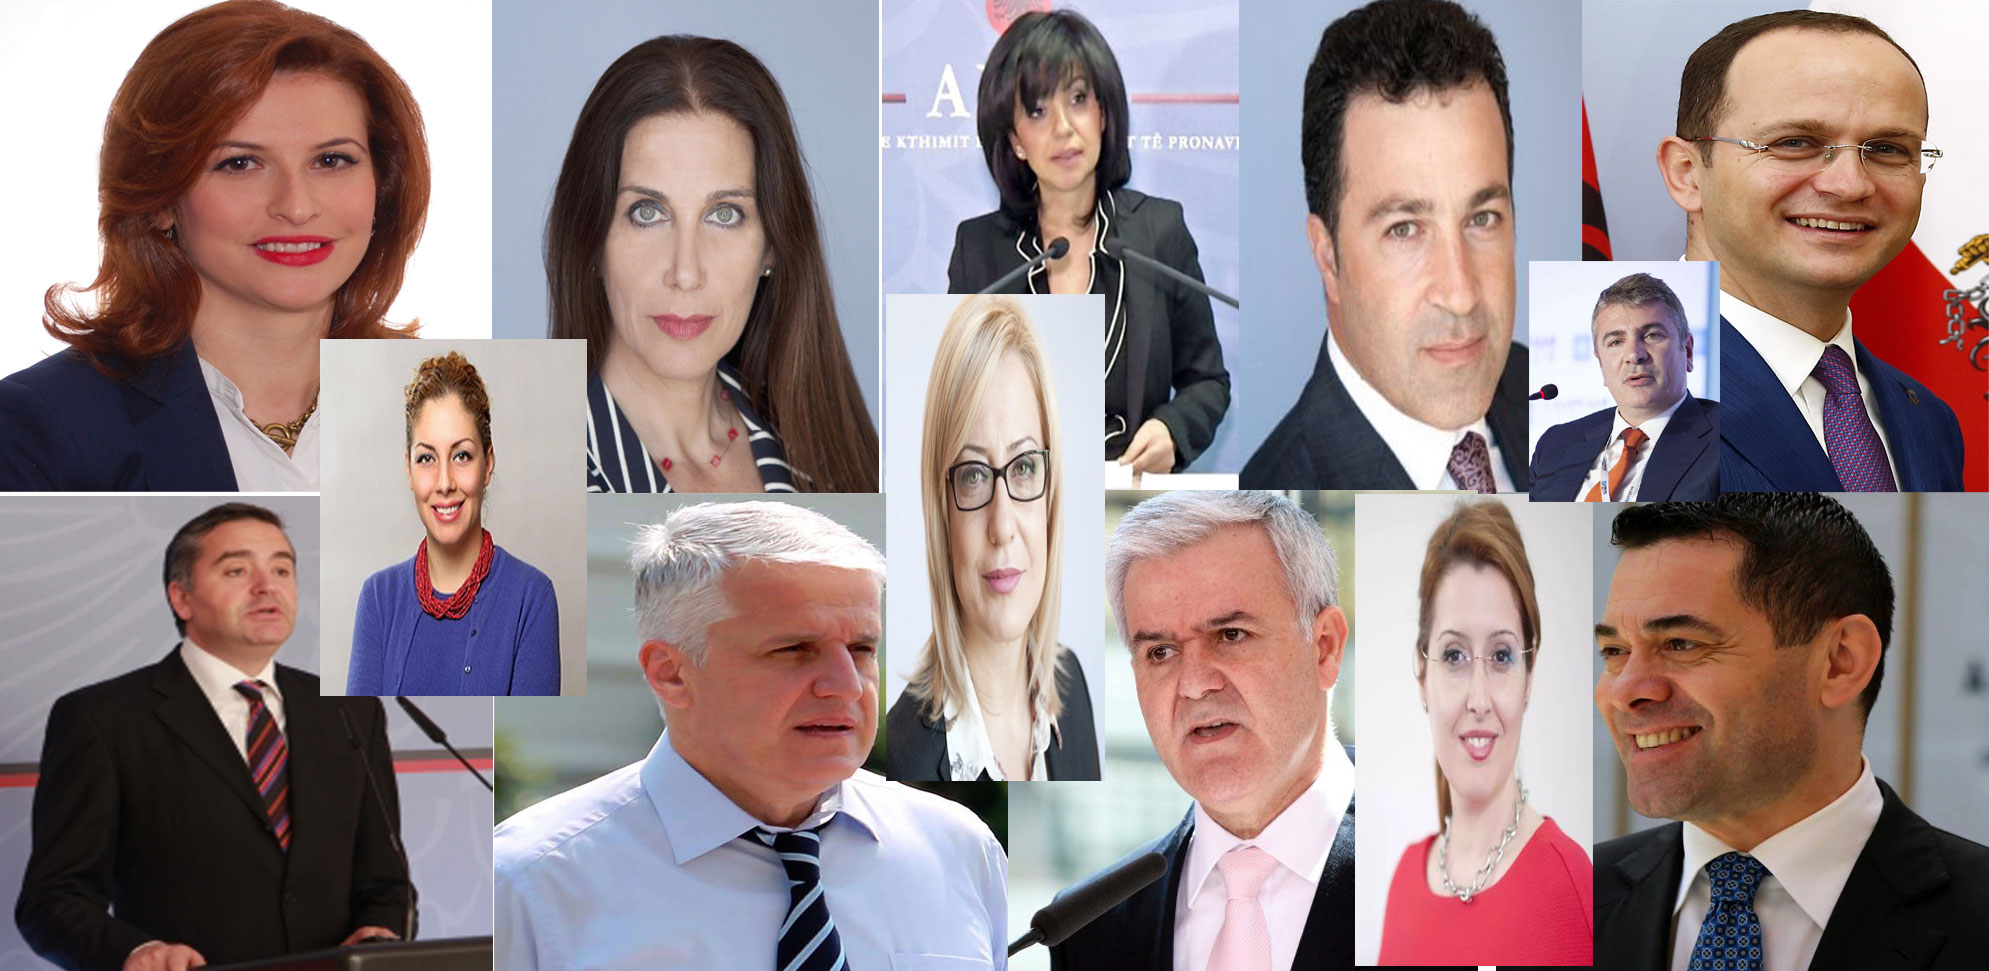 New changes in the Albanian government, many institutions merge with each other